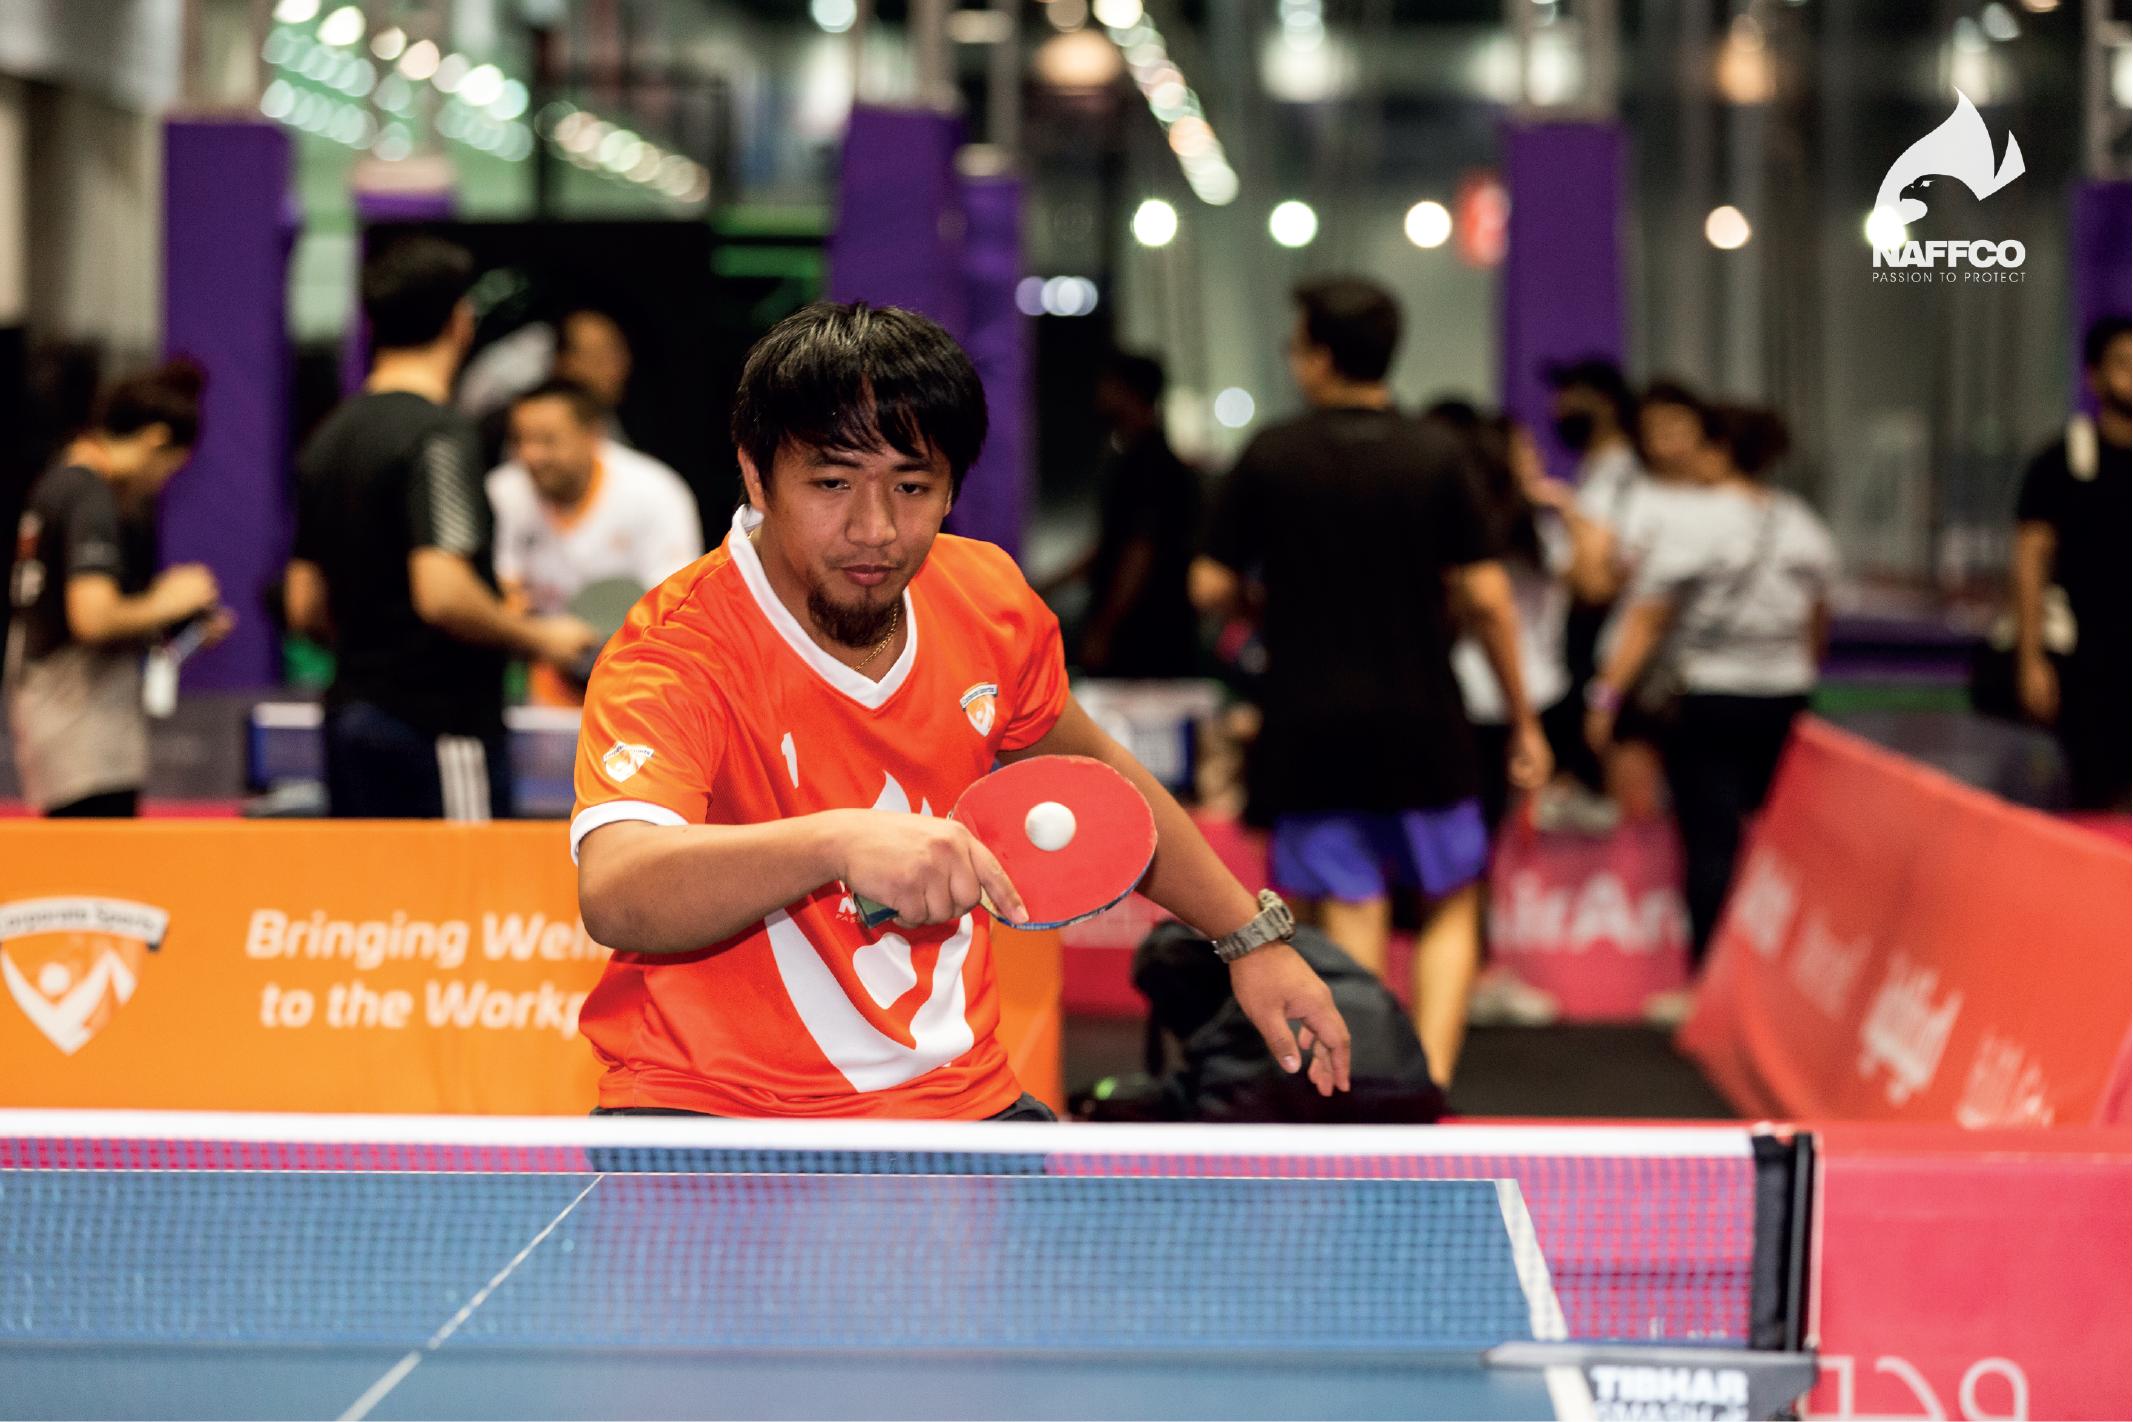 NAFFCO Table Tennis 2019